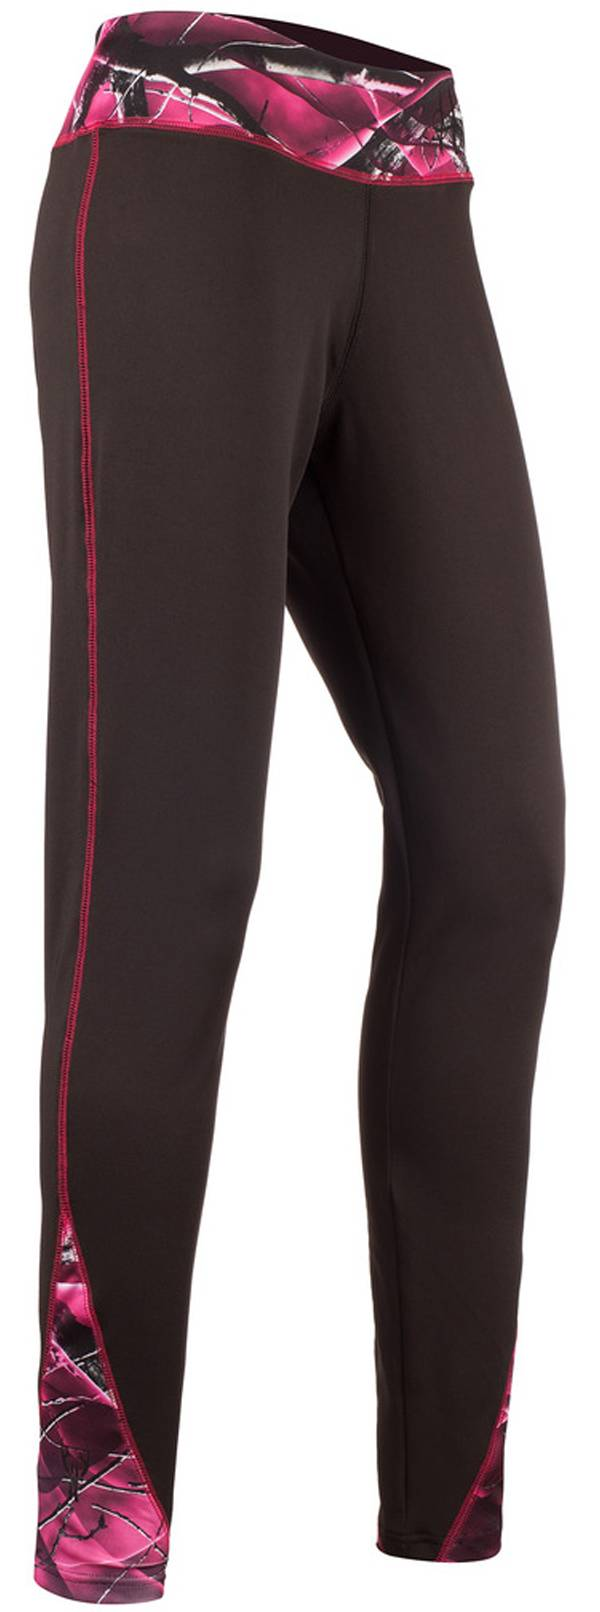 Huntworth Women's Simple Leggings product image